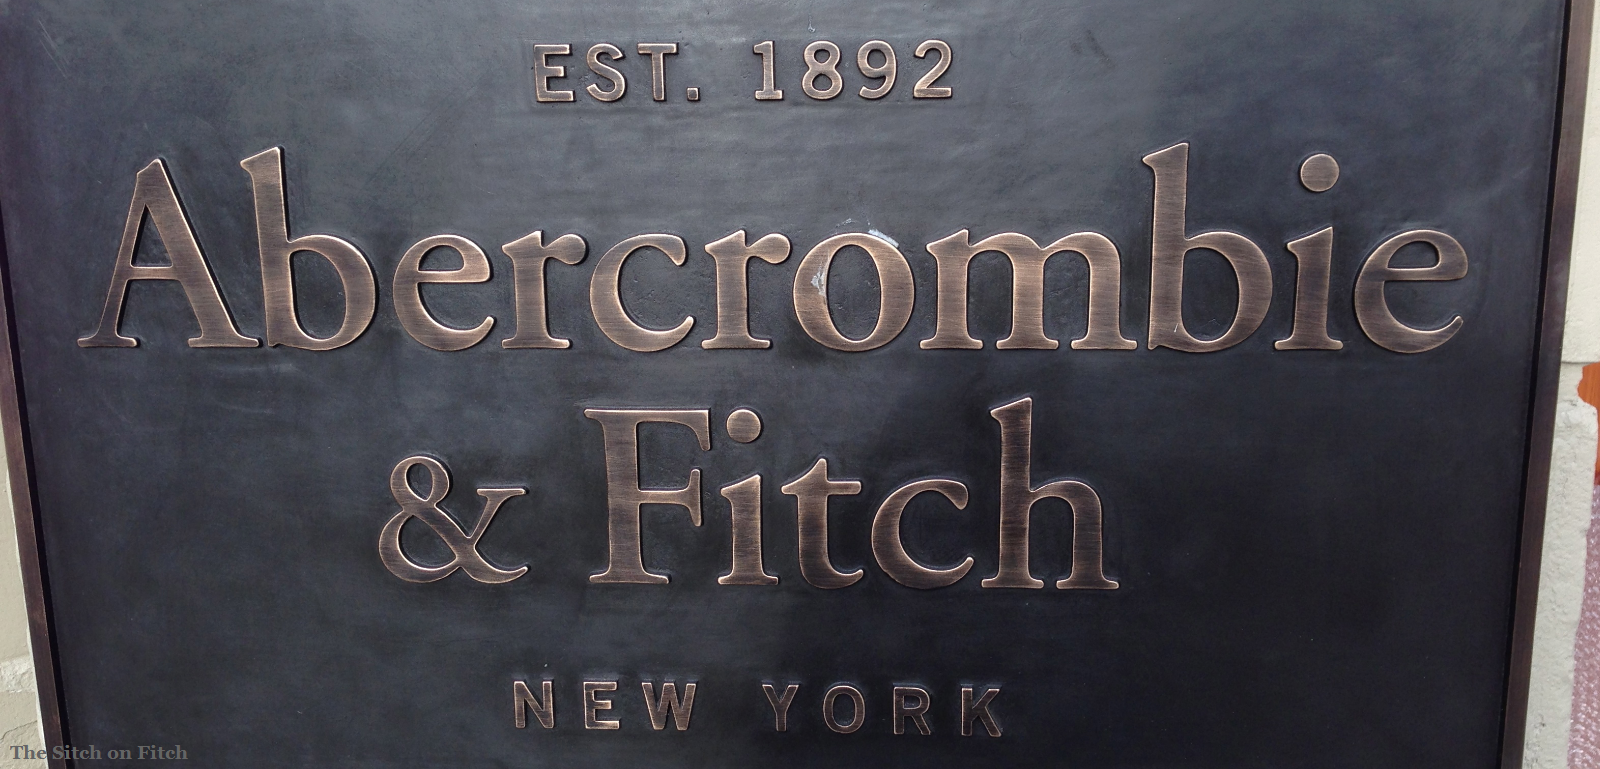 abercrombie and fitch case 3 Abercrombie and fitch case study 6 abercrombie and fitch case study eleanor m thompson southern new hampshire university mkt-222 abercrombie and fitch case study 6 abercrombie and fitch is a retailer specializing in luxury sportswear apparel marketed towards young adults.